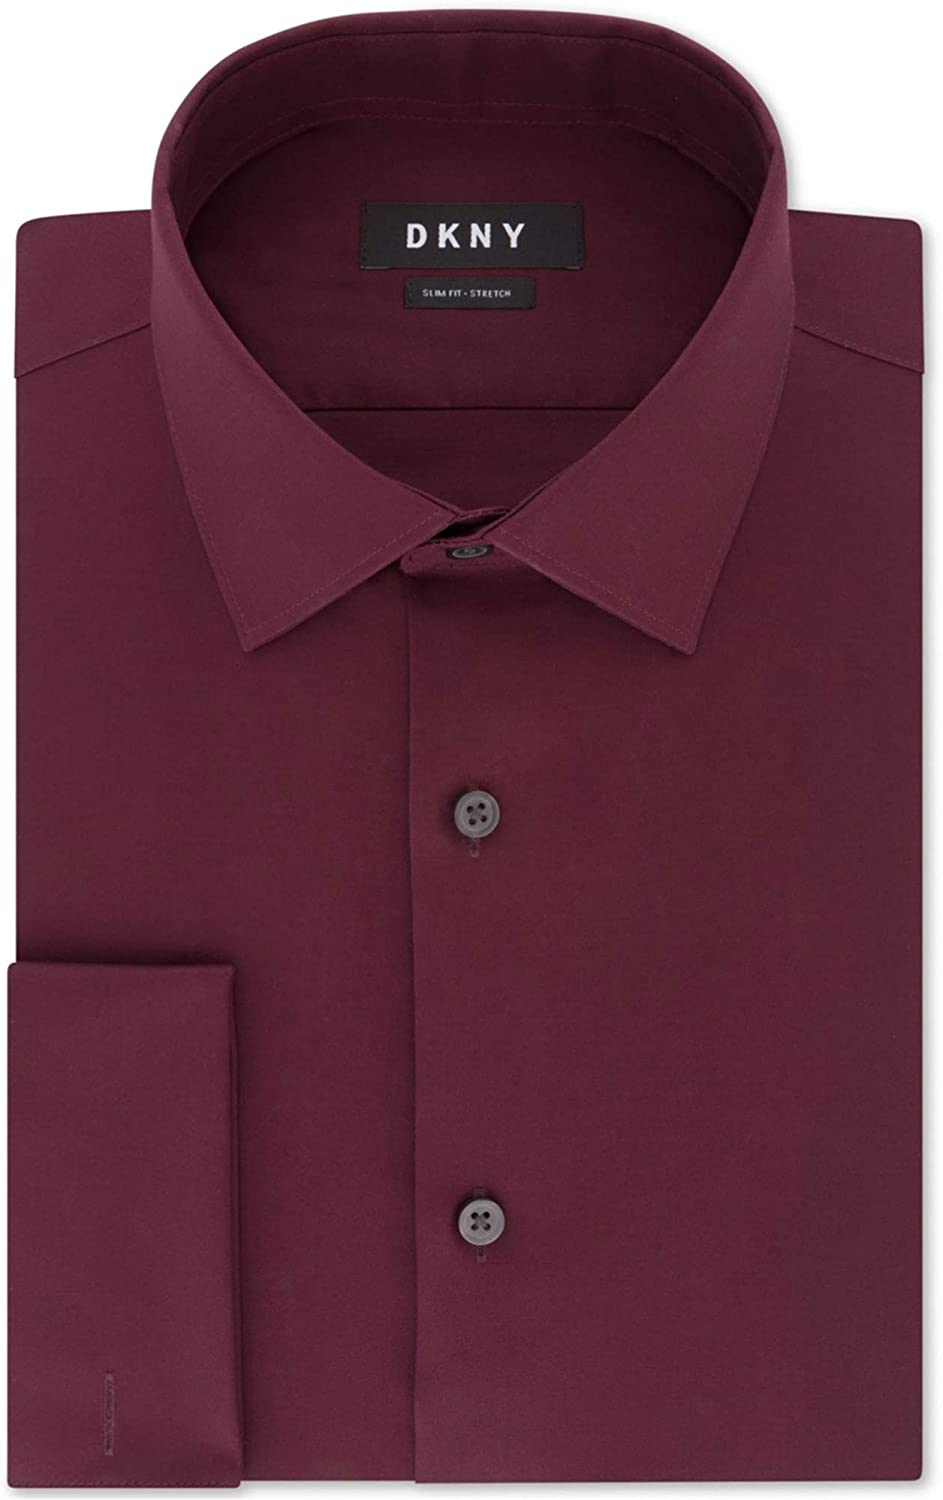 DKNY Mens French Cuff Button Up Dress Shirt, Red, 15